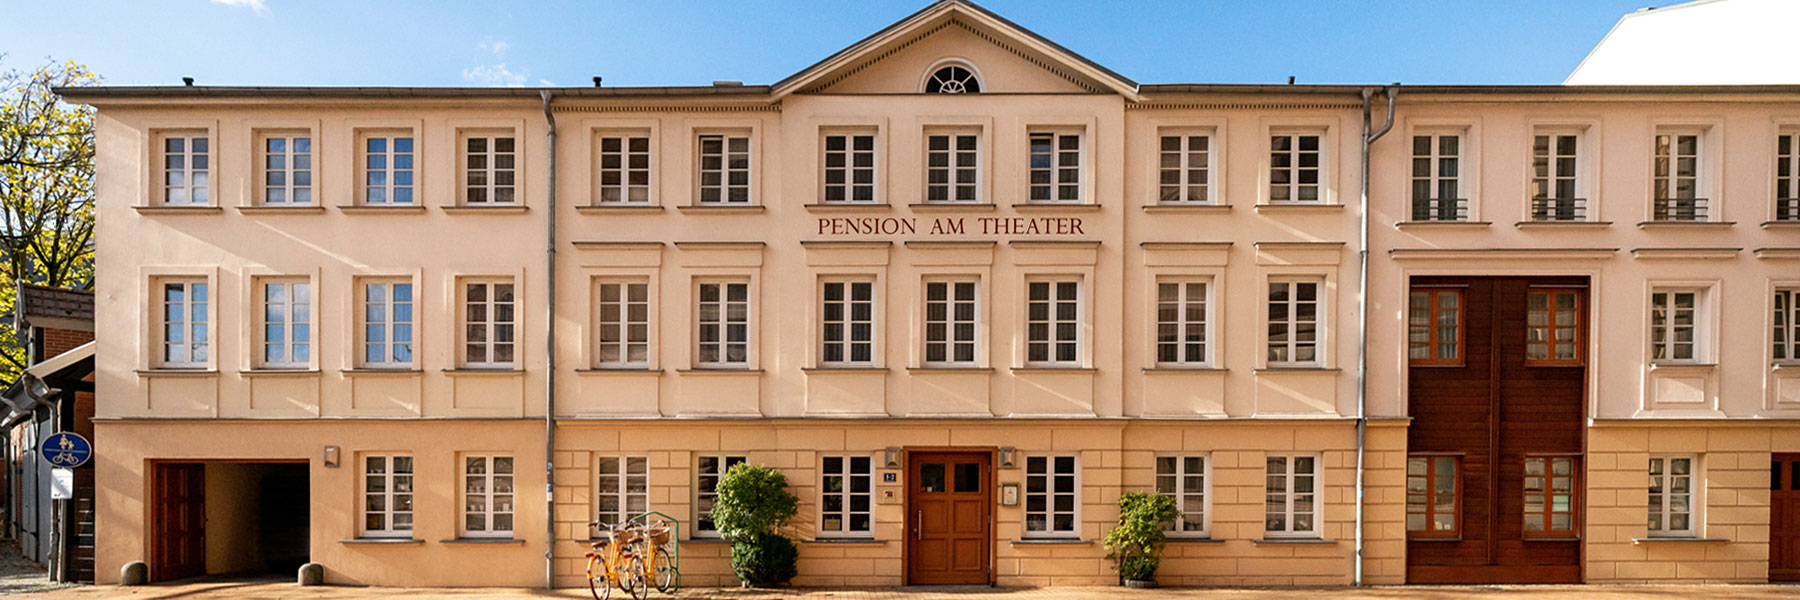 Fassade Pension - Hotel - Pension am Theater